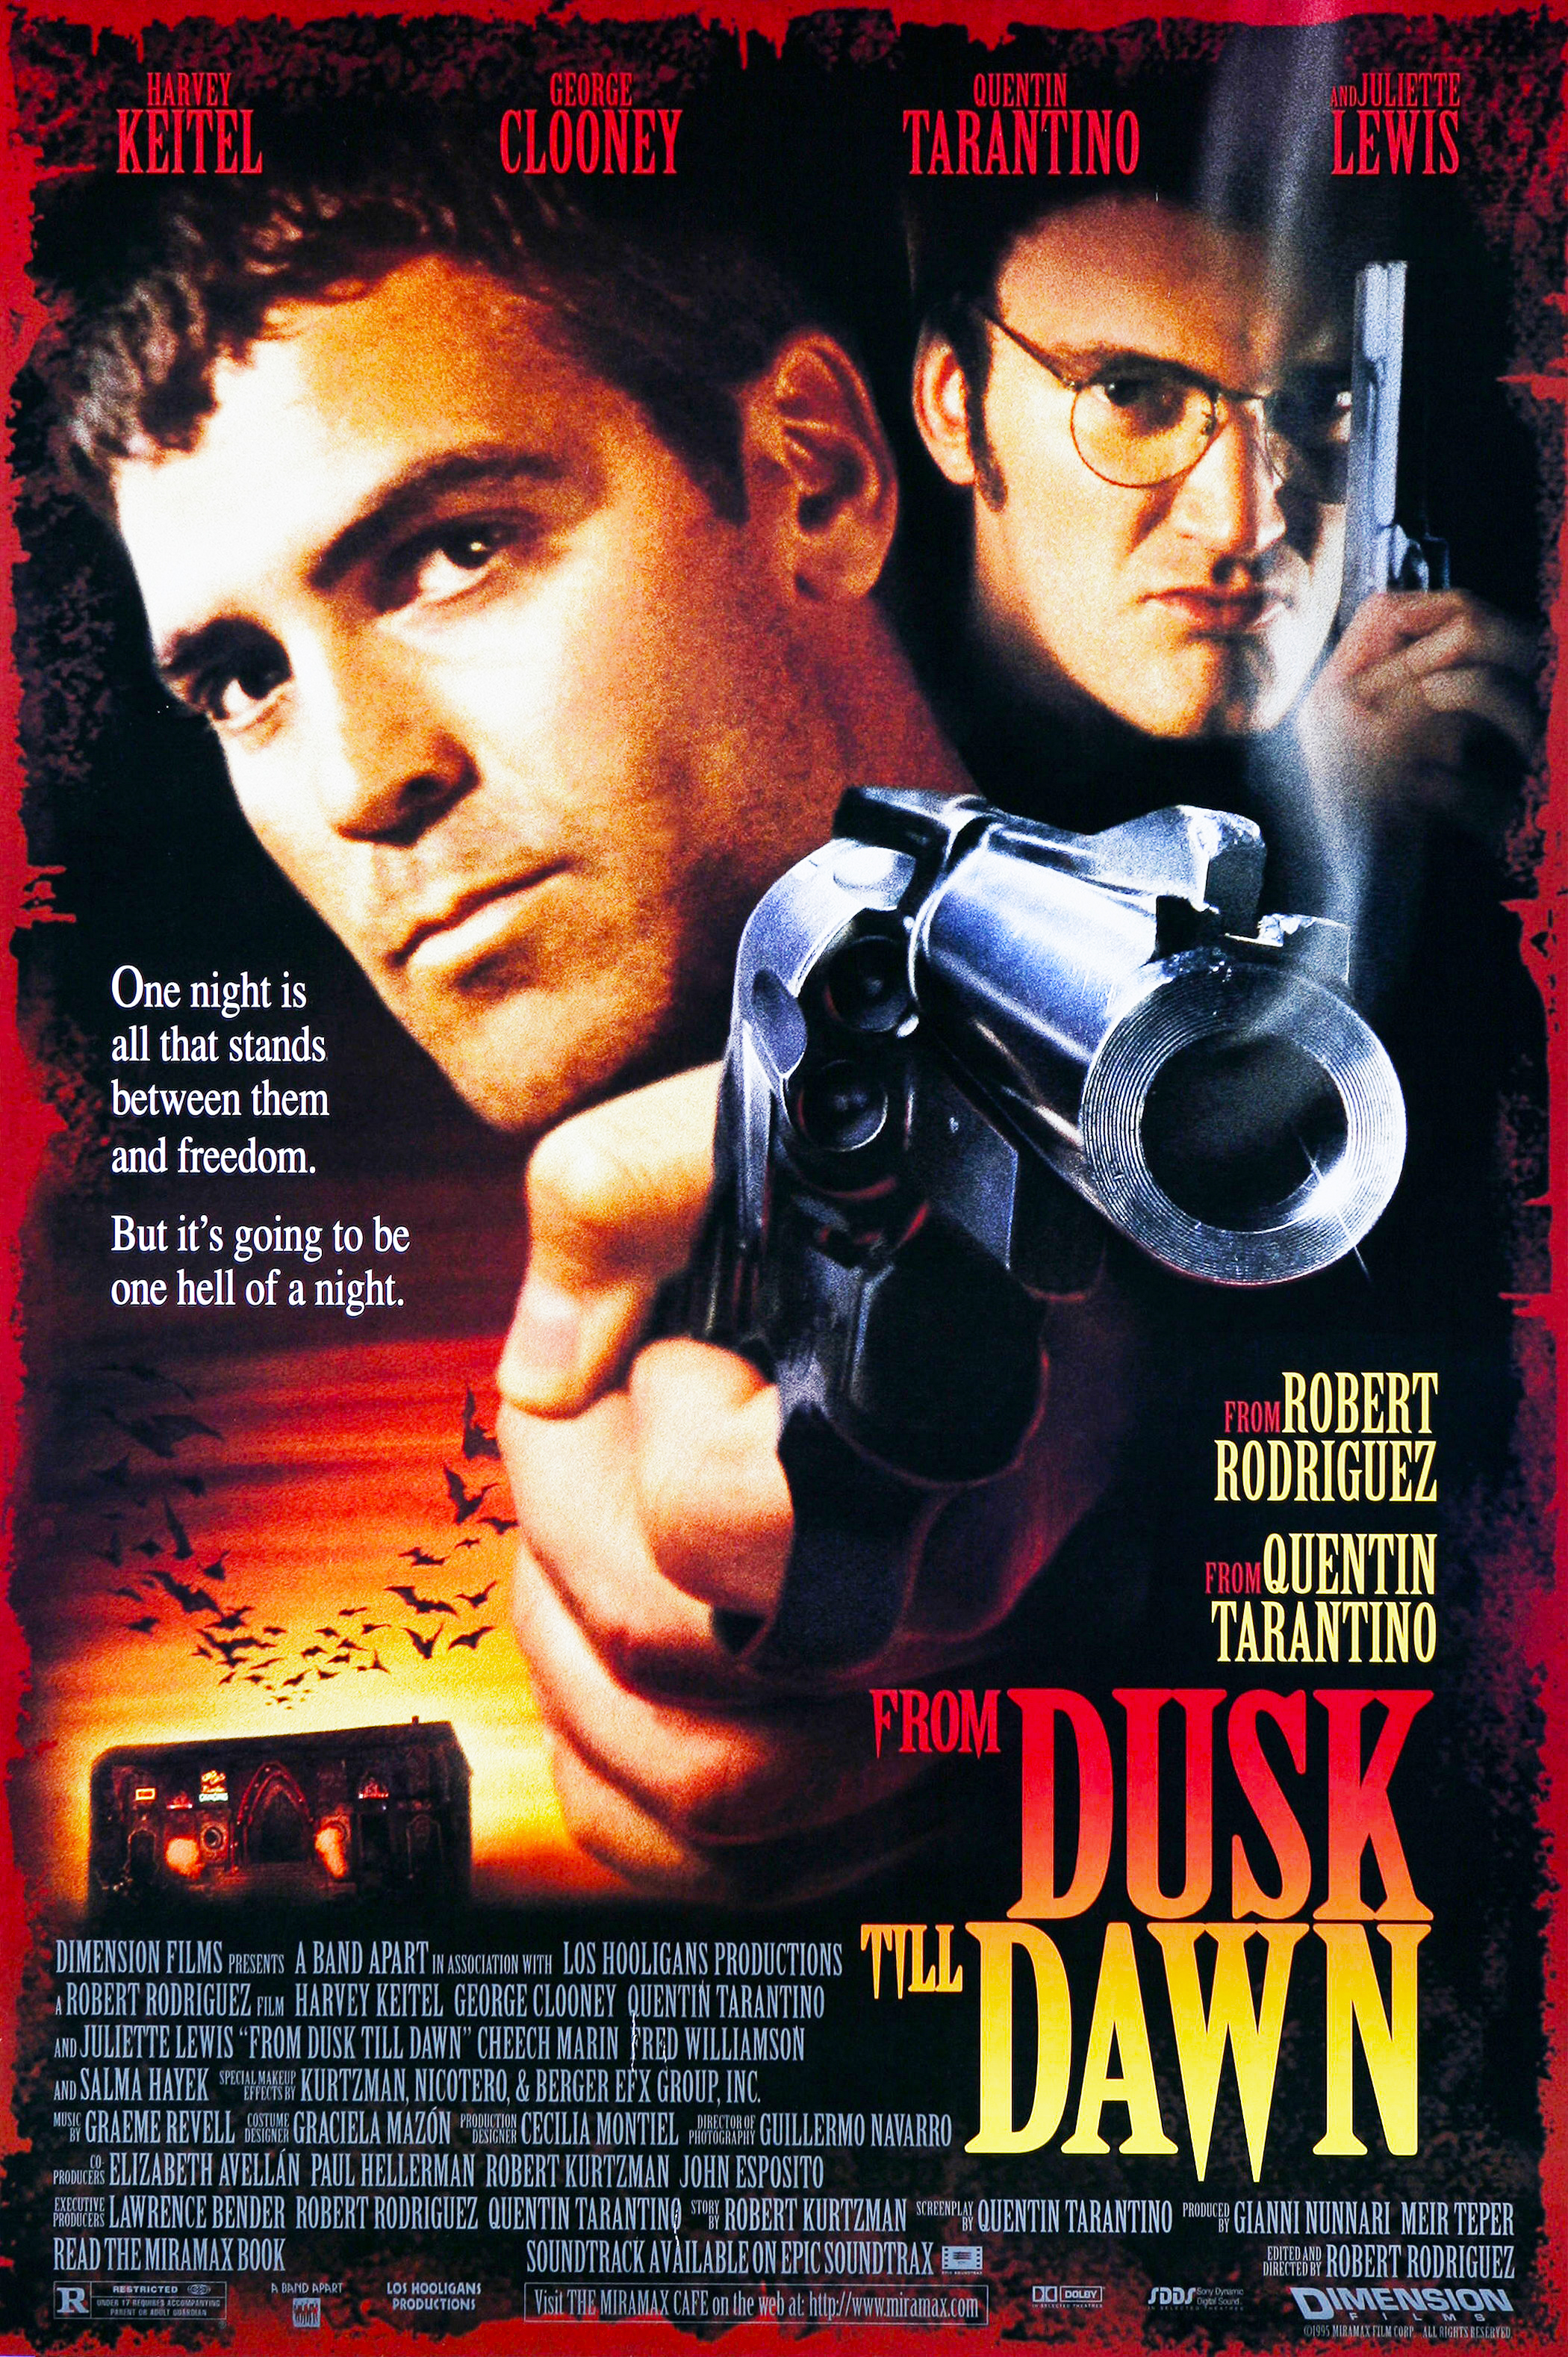 from dusk till dawn season 1 complete download